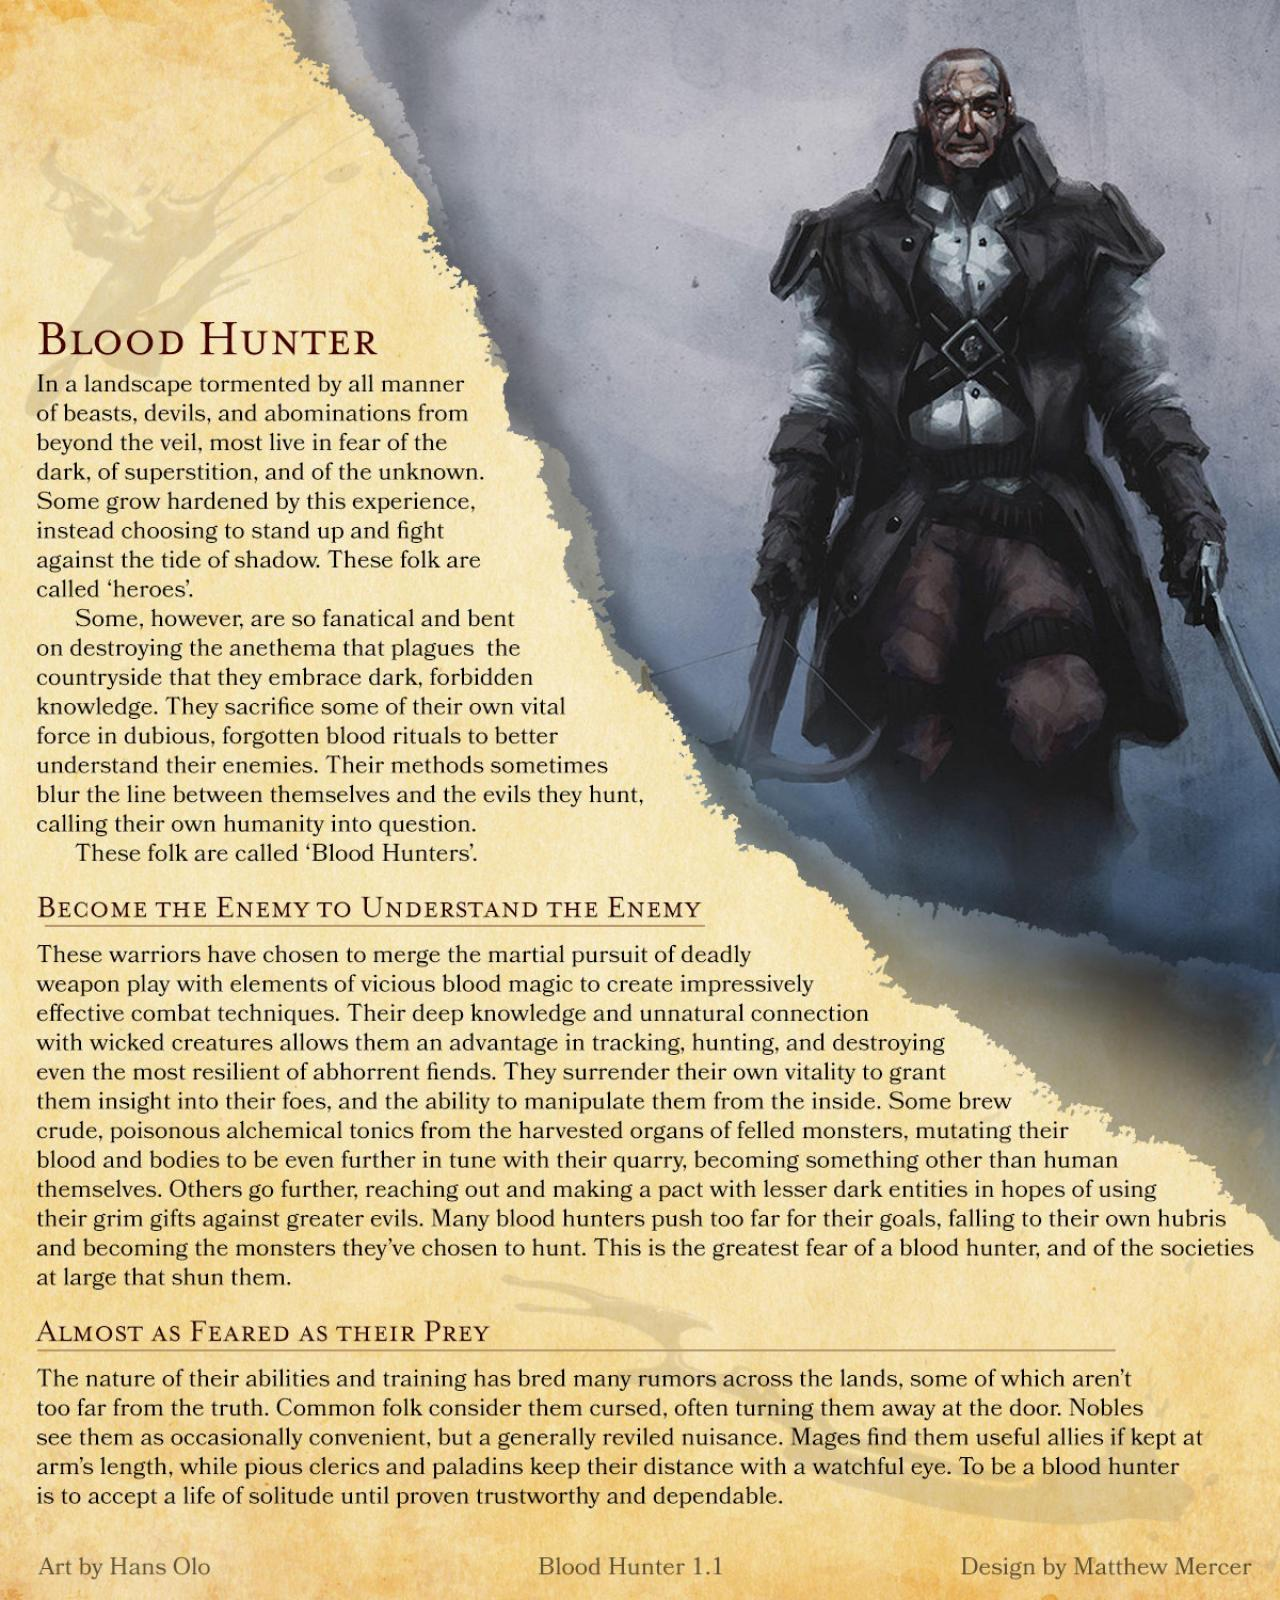 Dnd 5e blood hunter guide